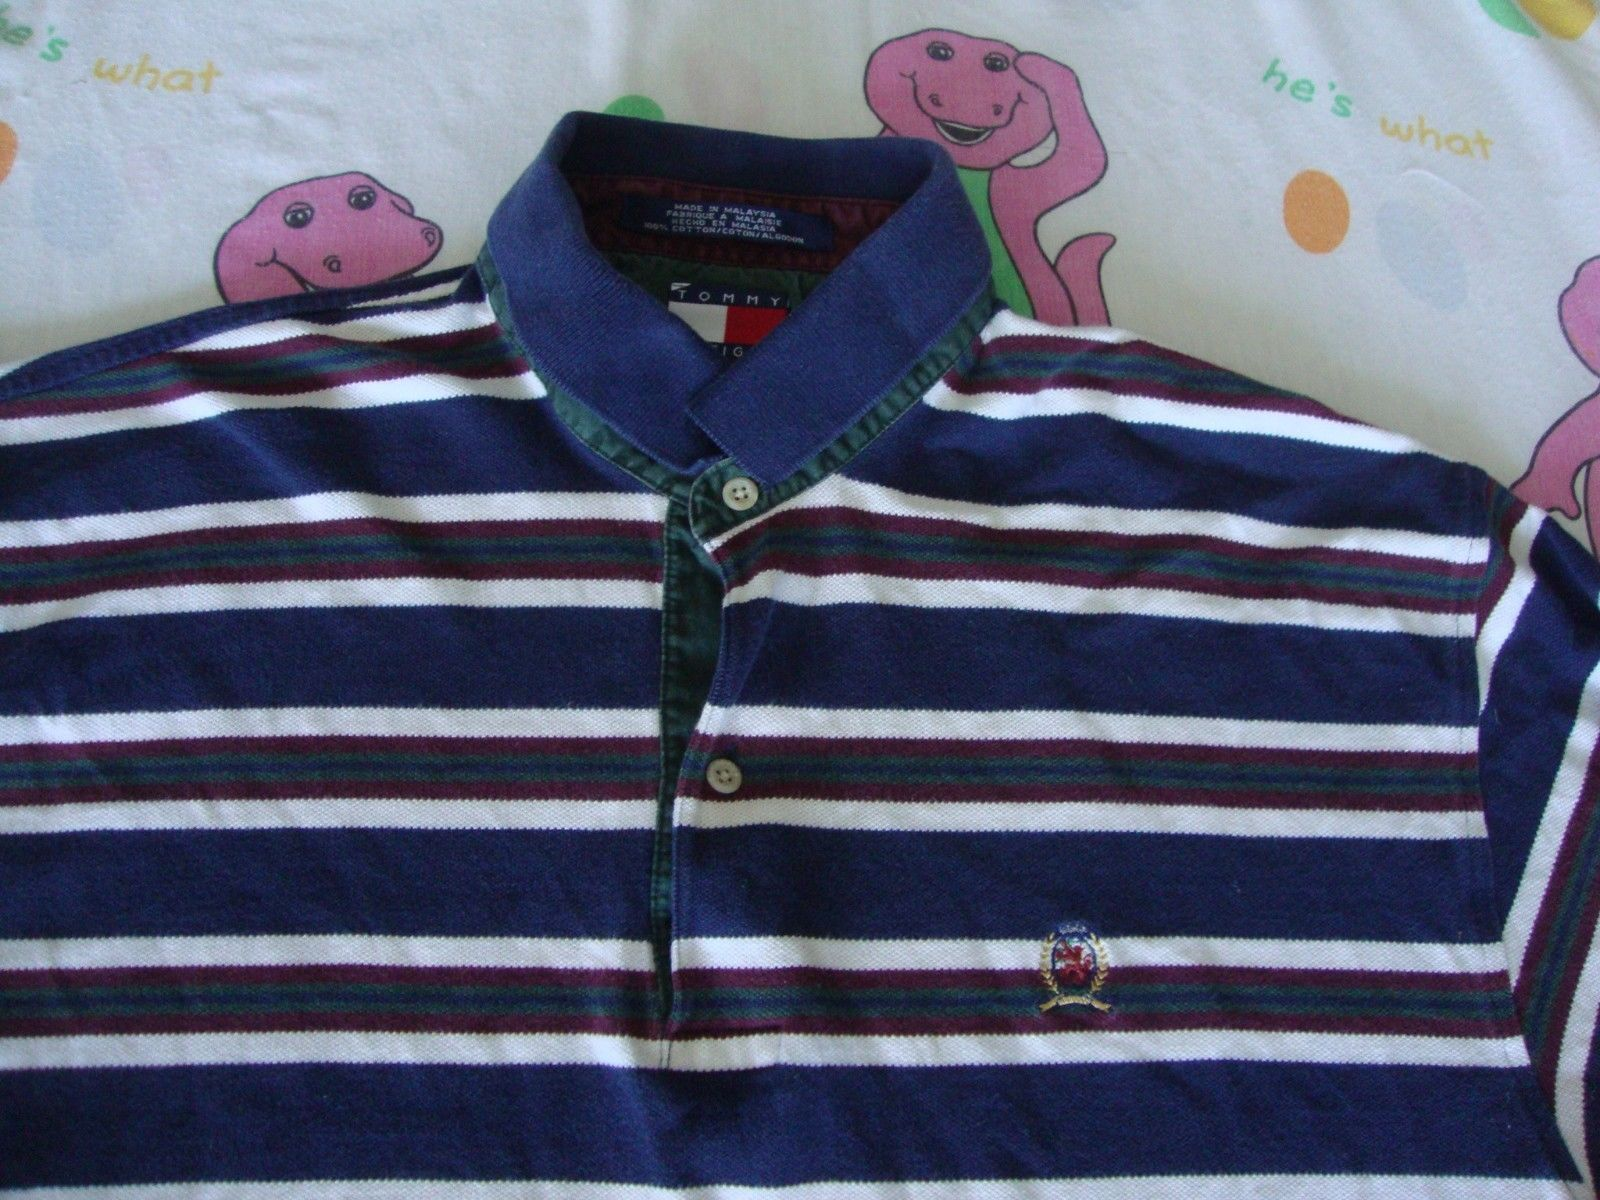 29260ac1 S l1600. S l1600. Previous. Vintage TOMMY HILFIGER Stripe Navy 90's Rap Hip  Hop Long Sleeve Polo Shirt XL